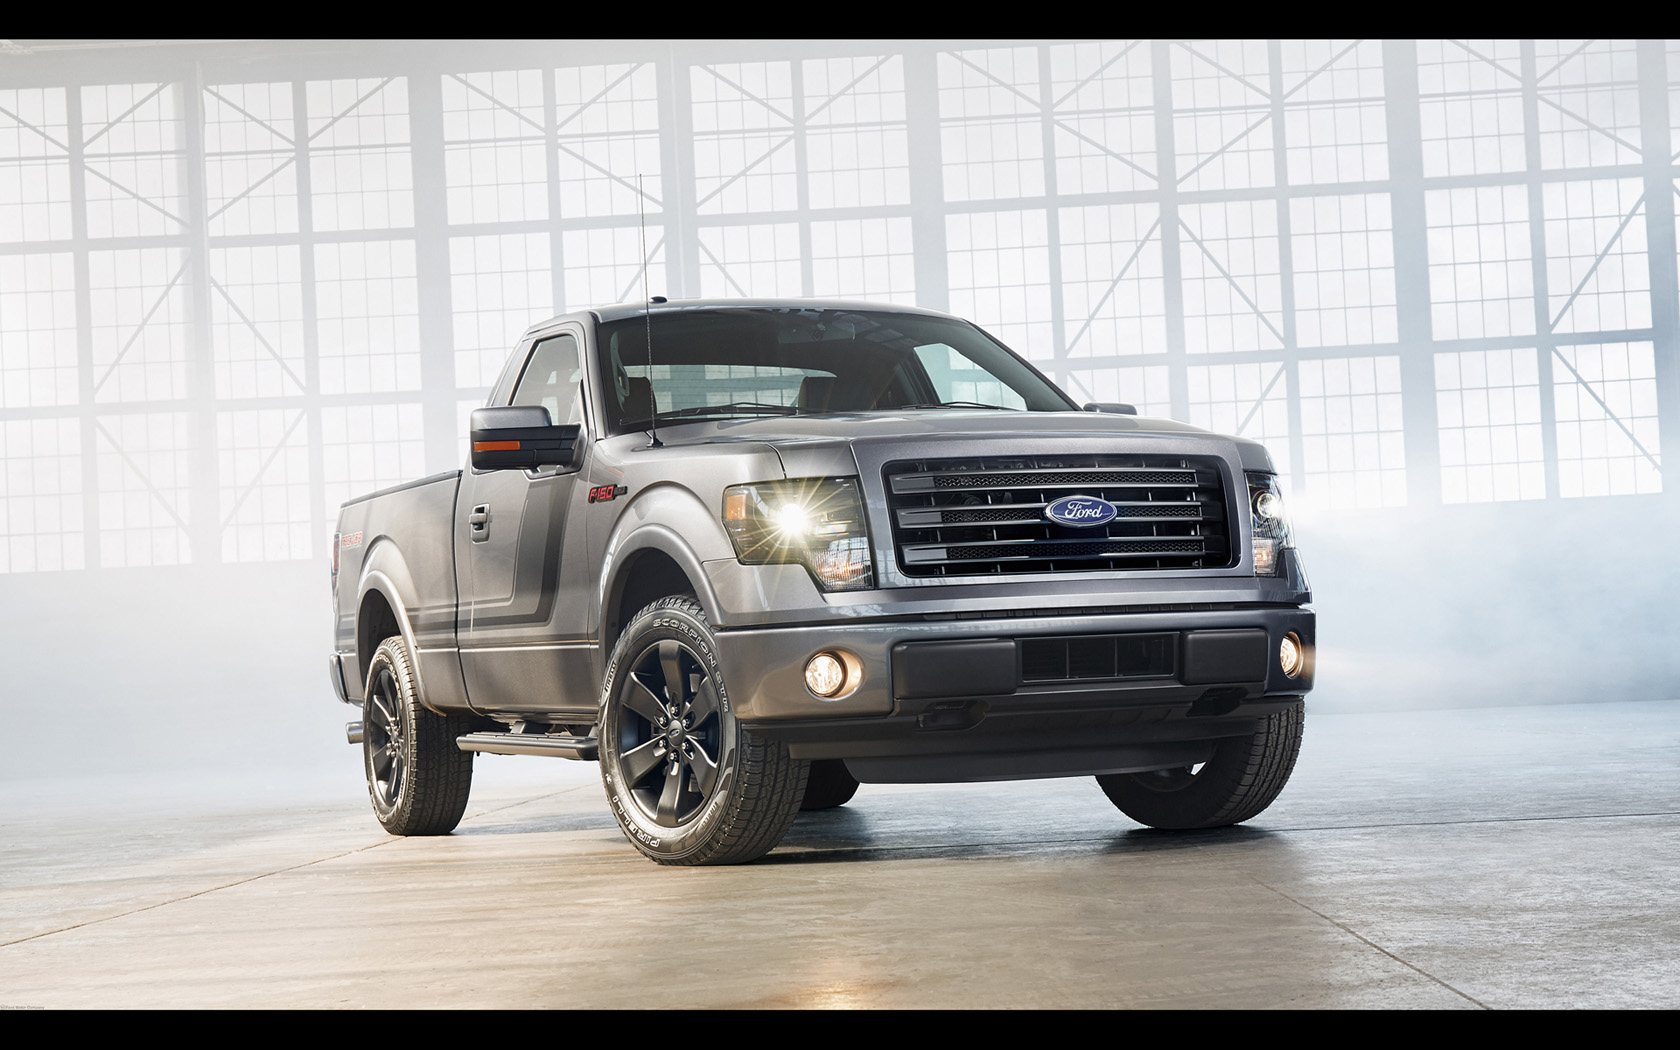 2018 ford f 150 svt raptor special edition car photos catalog 2018. Black Bedroom Furniture Sets. Home Design Ideas